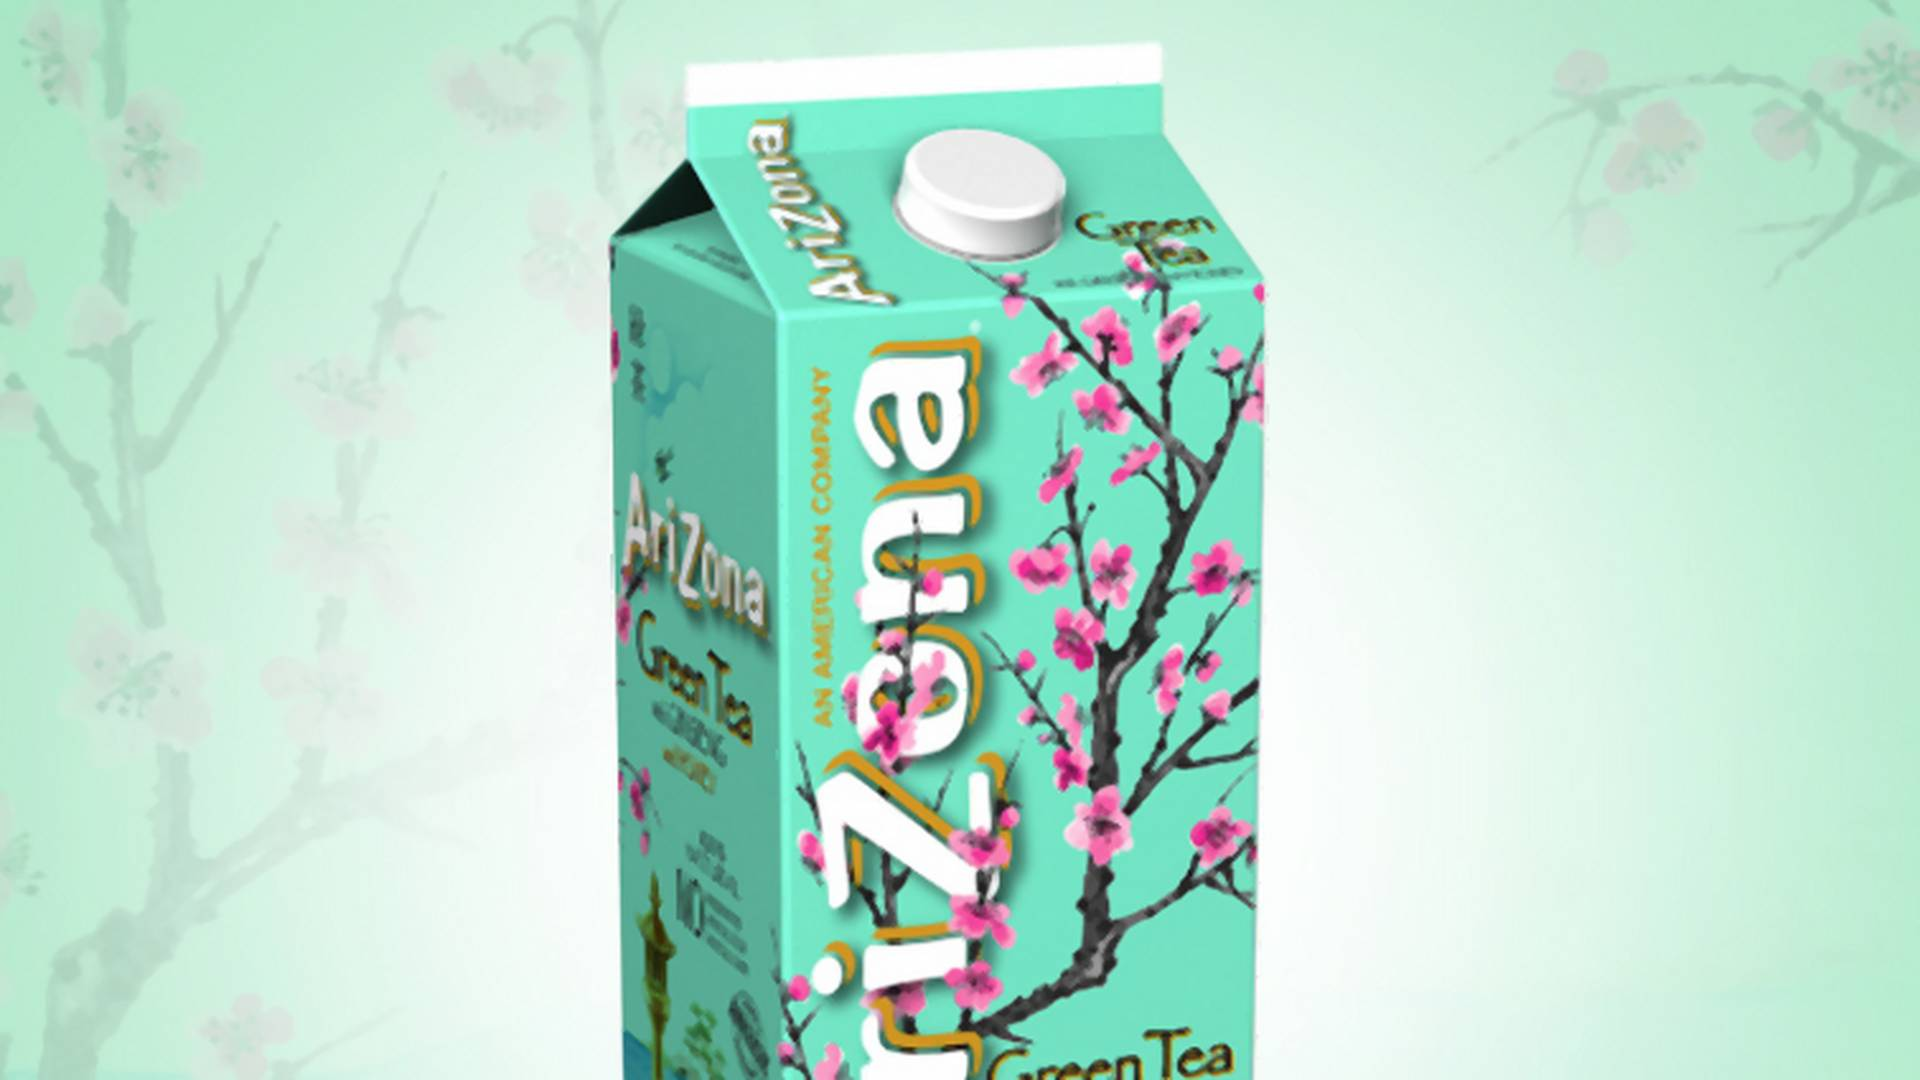 Arizona Iced Tea schließt Deal mit Cannabis-Firma ab